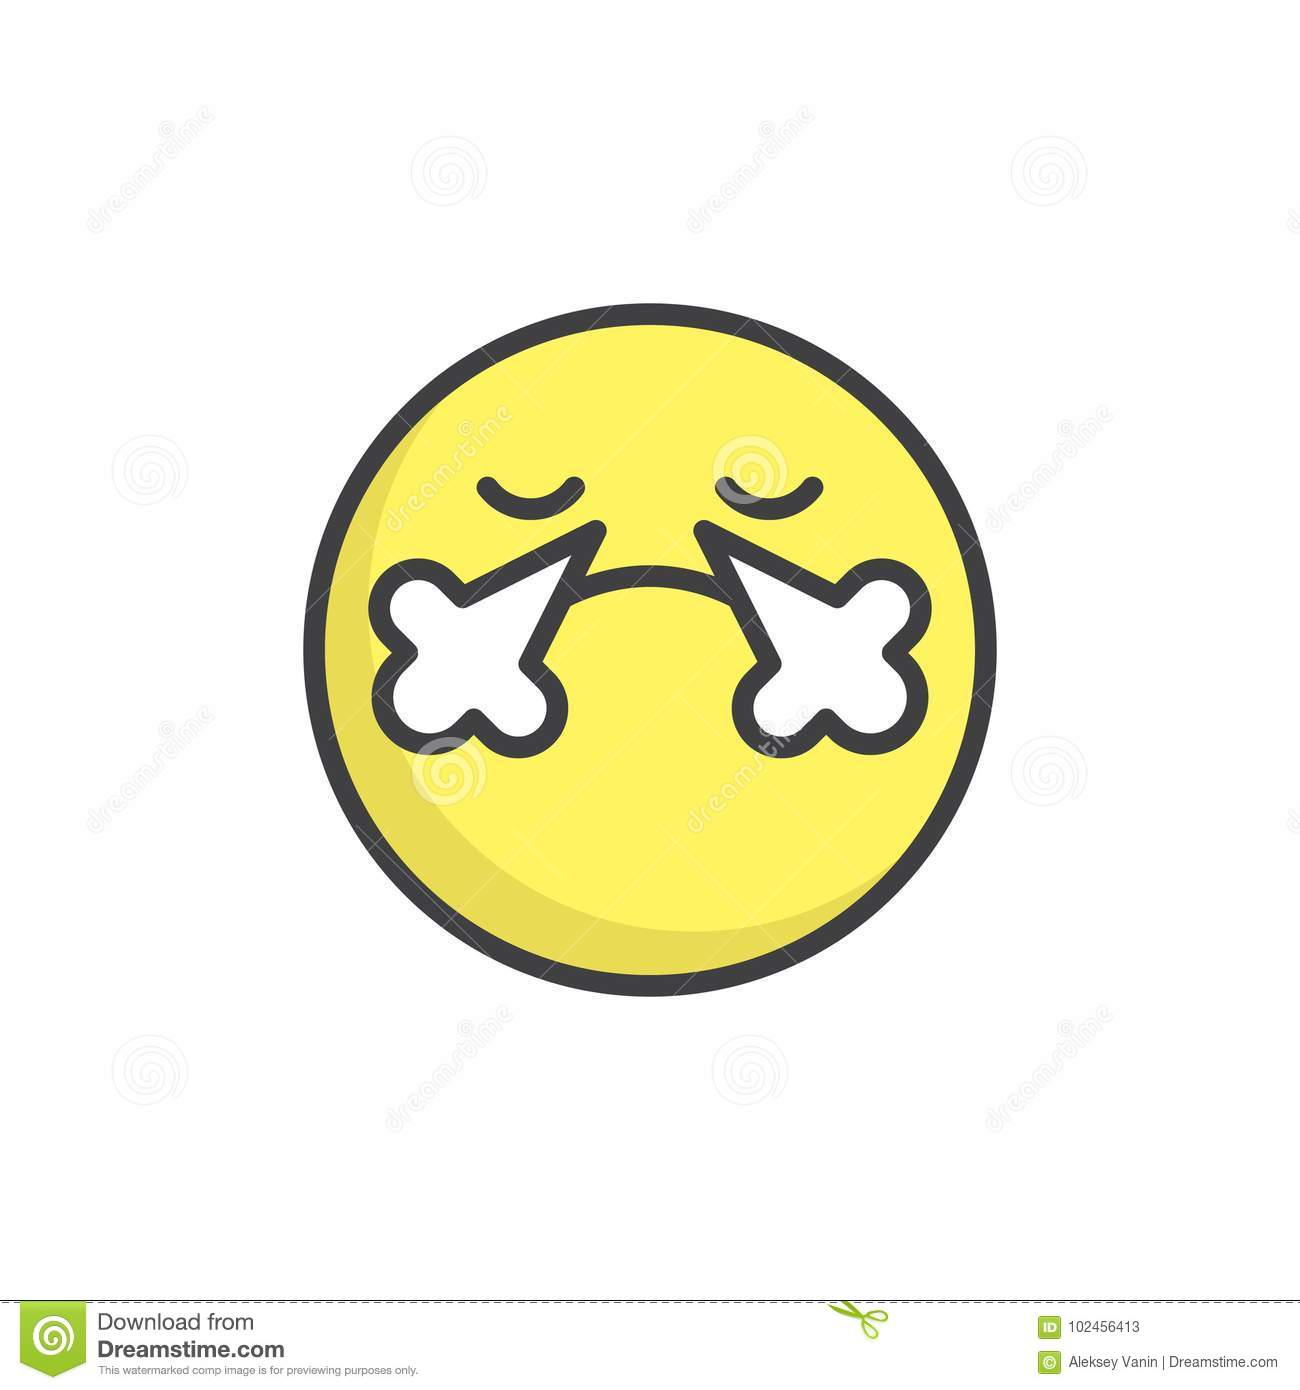 Angry Face Emoticon Filled Outline Icon Stock Vector Illustration